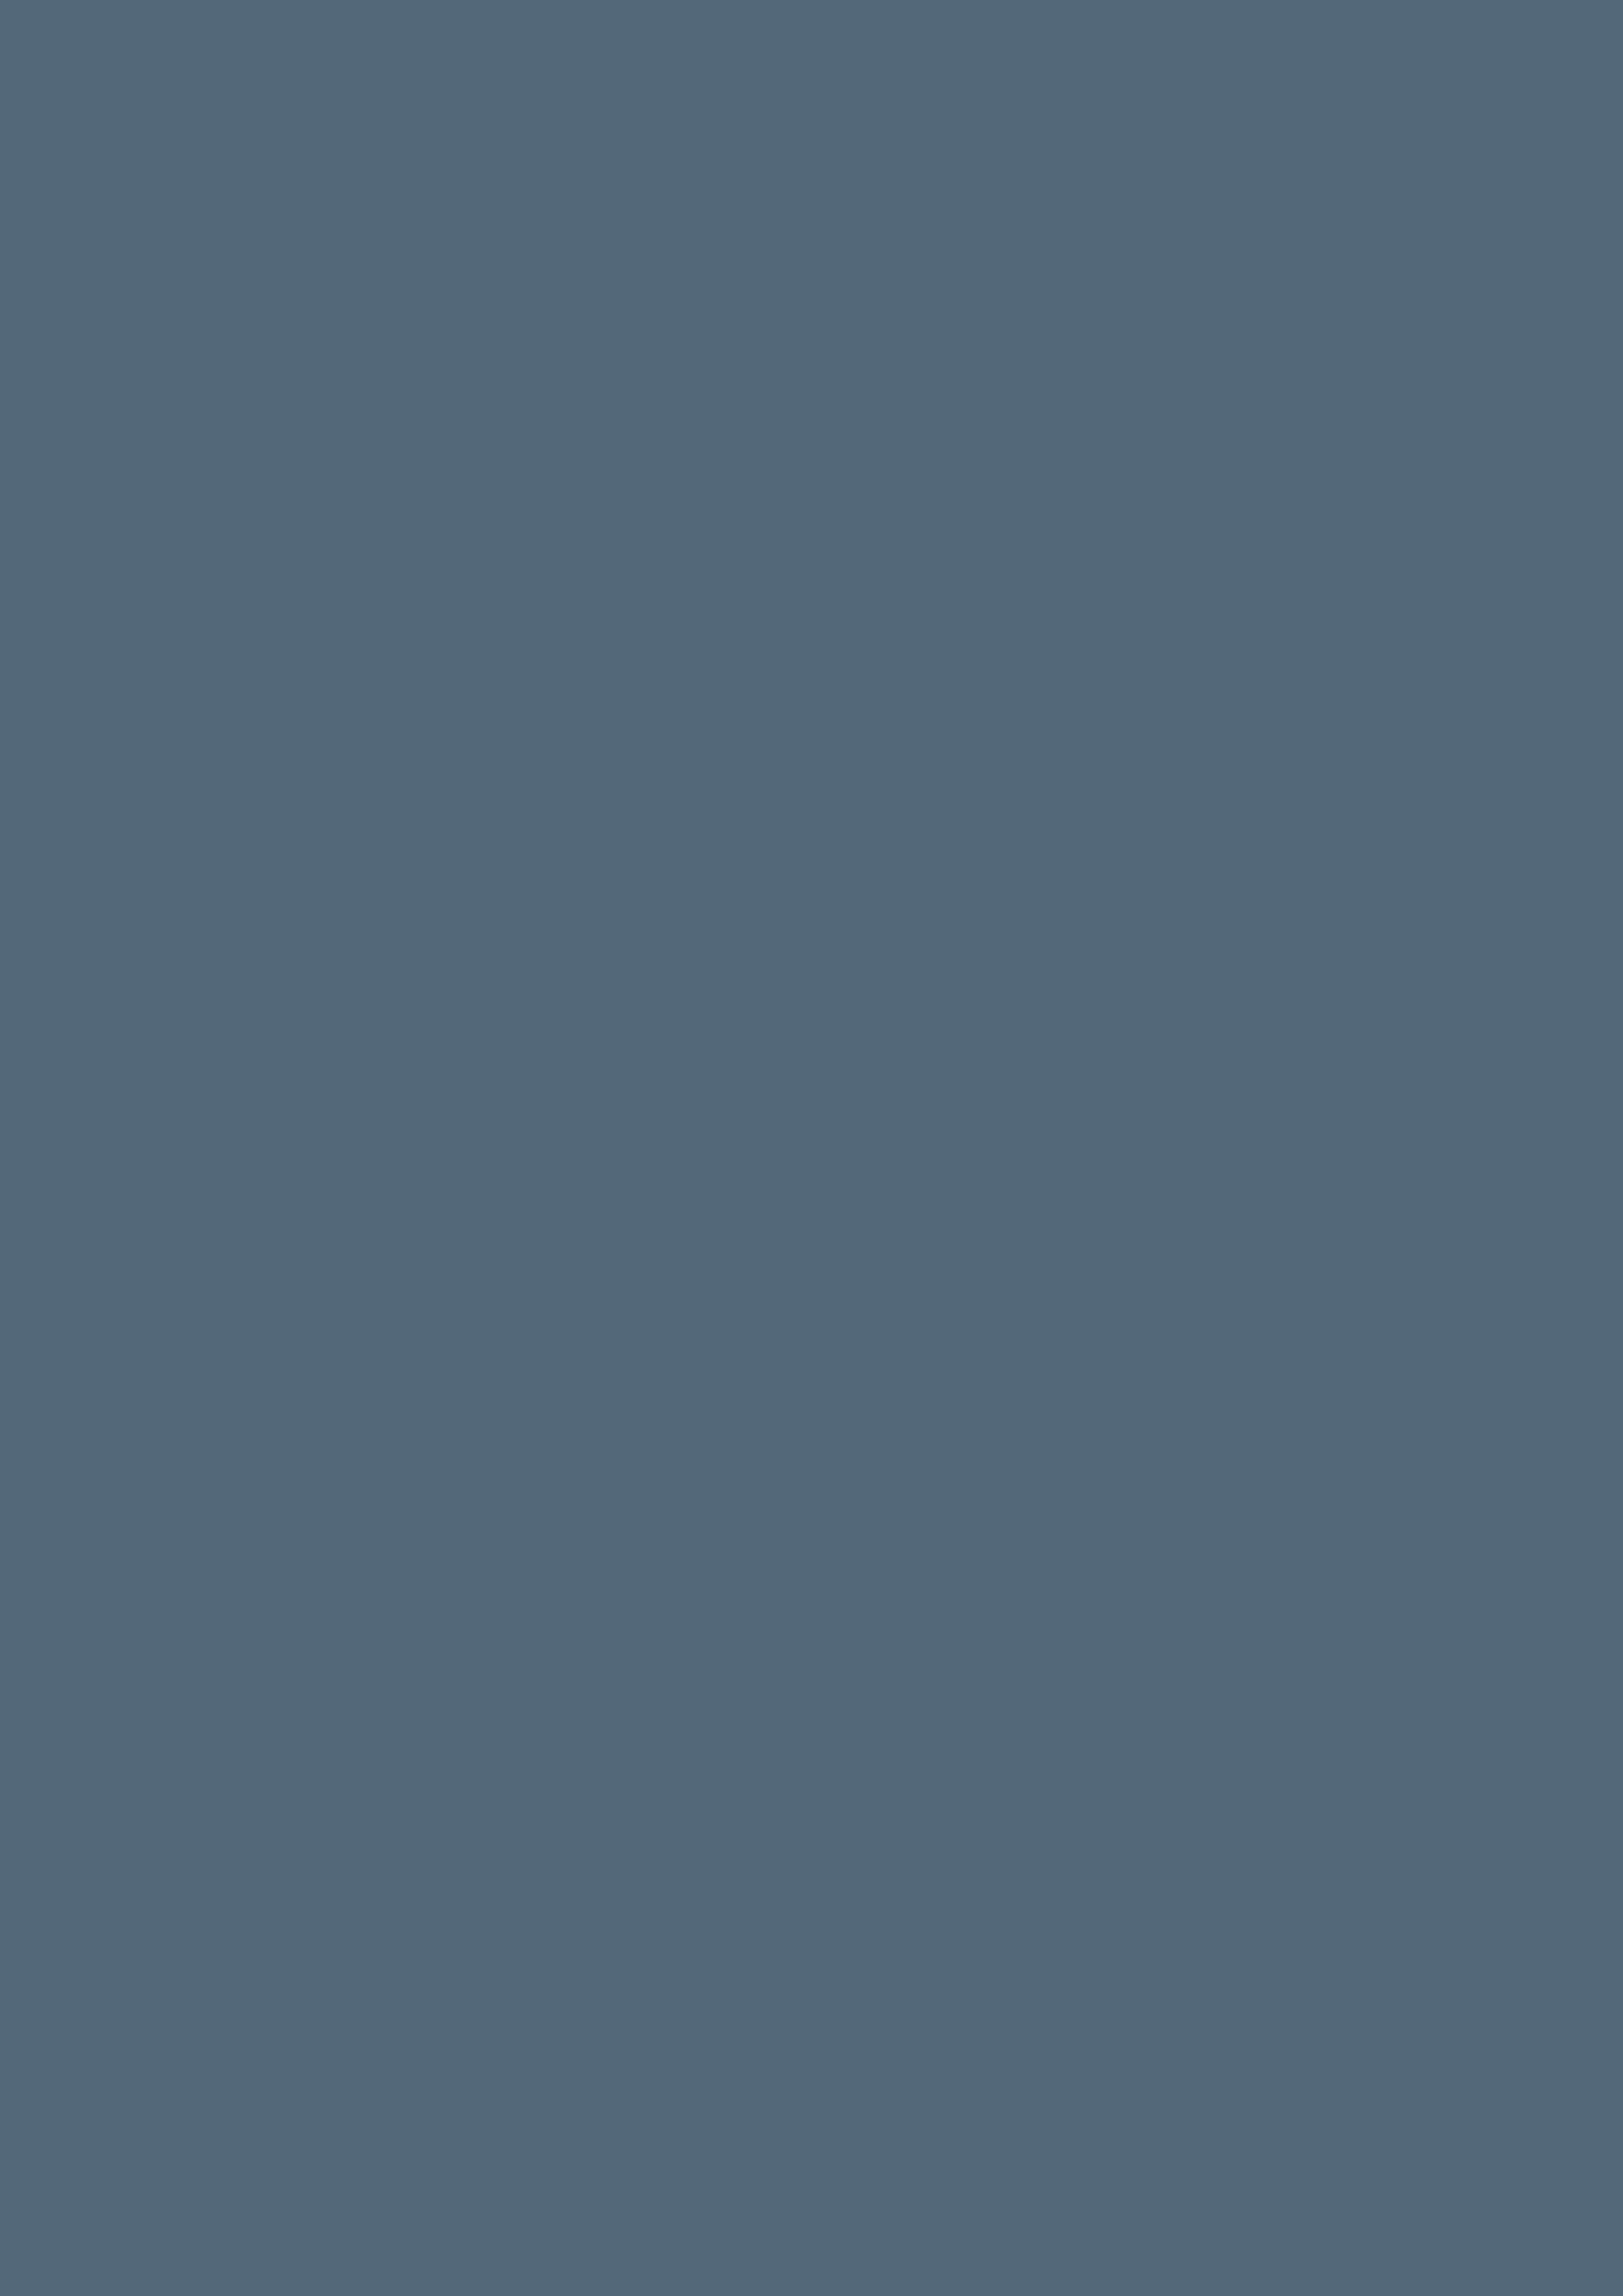 2480x3508 Paynes Grey Solid Color Background